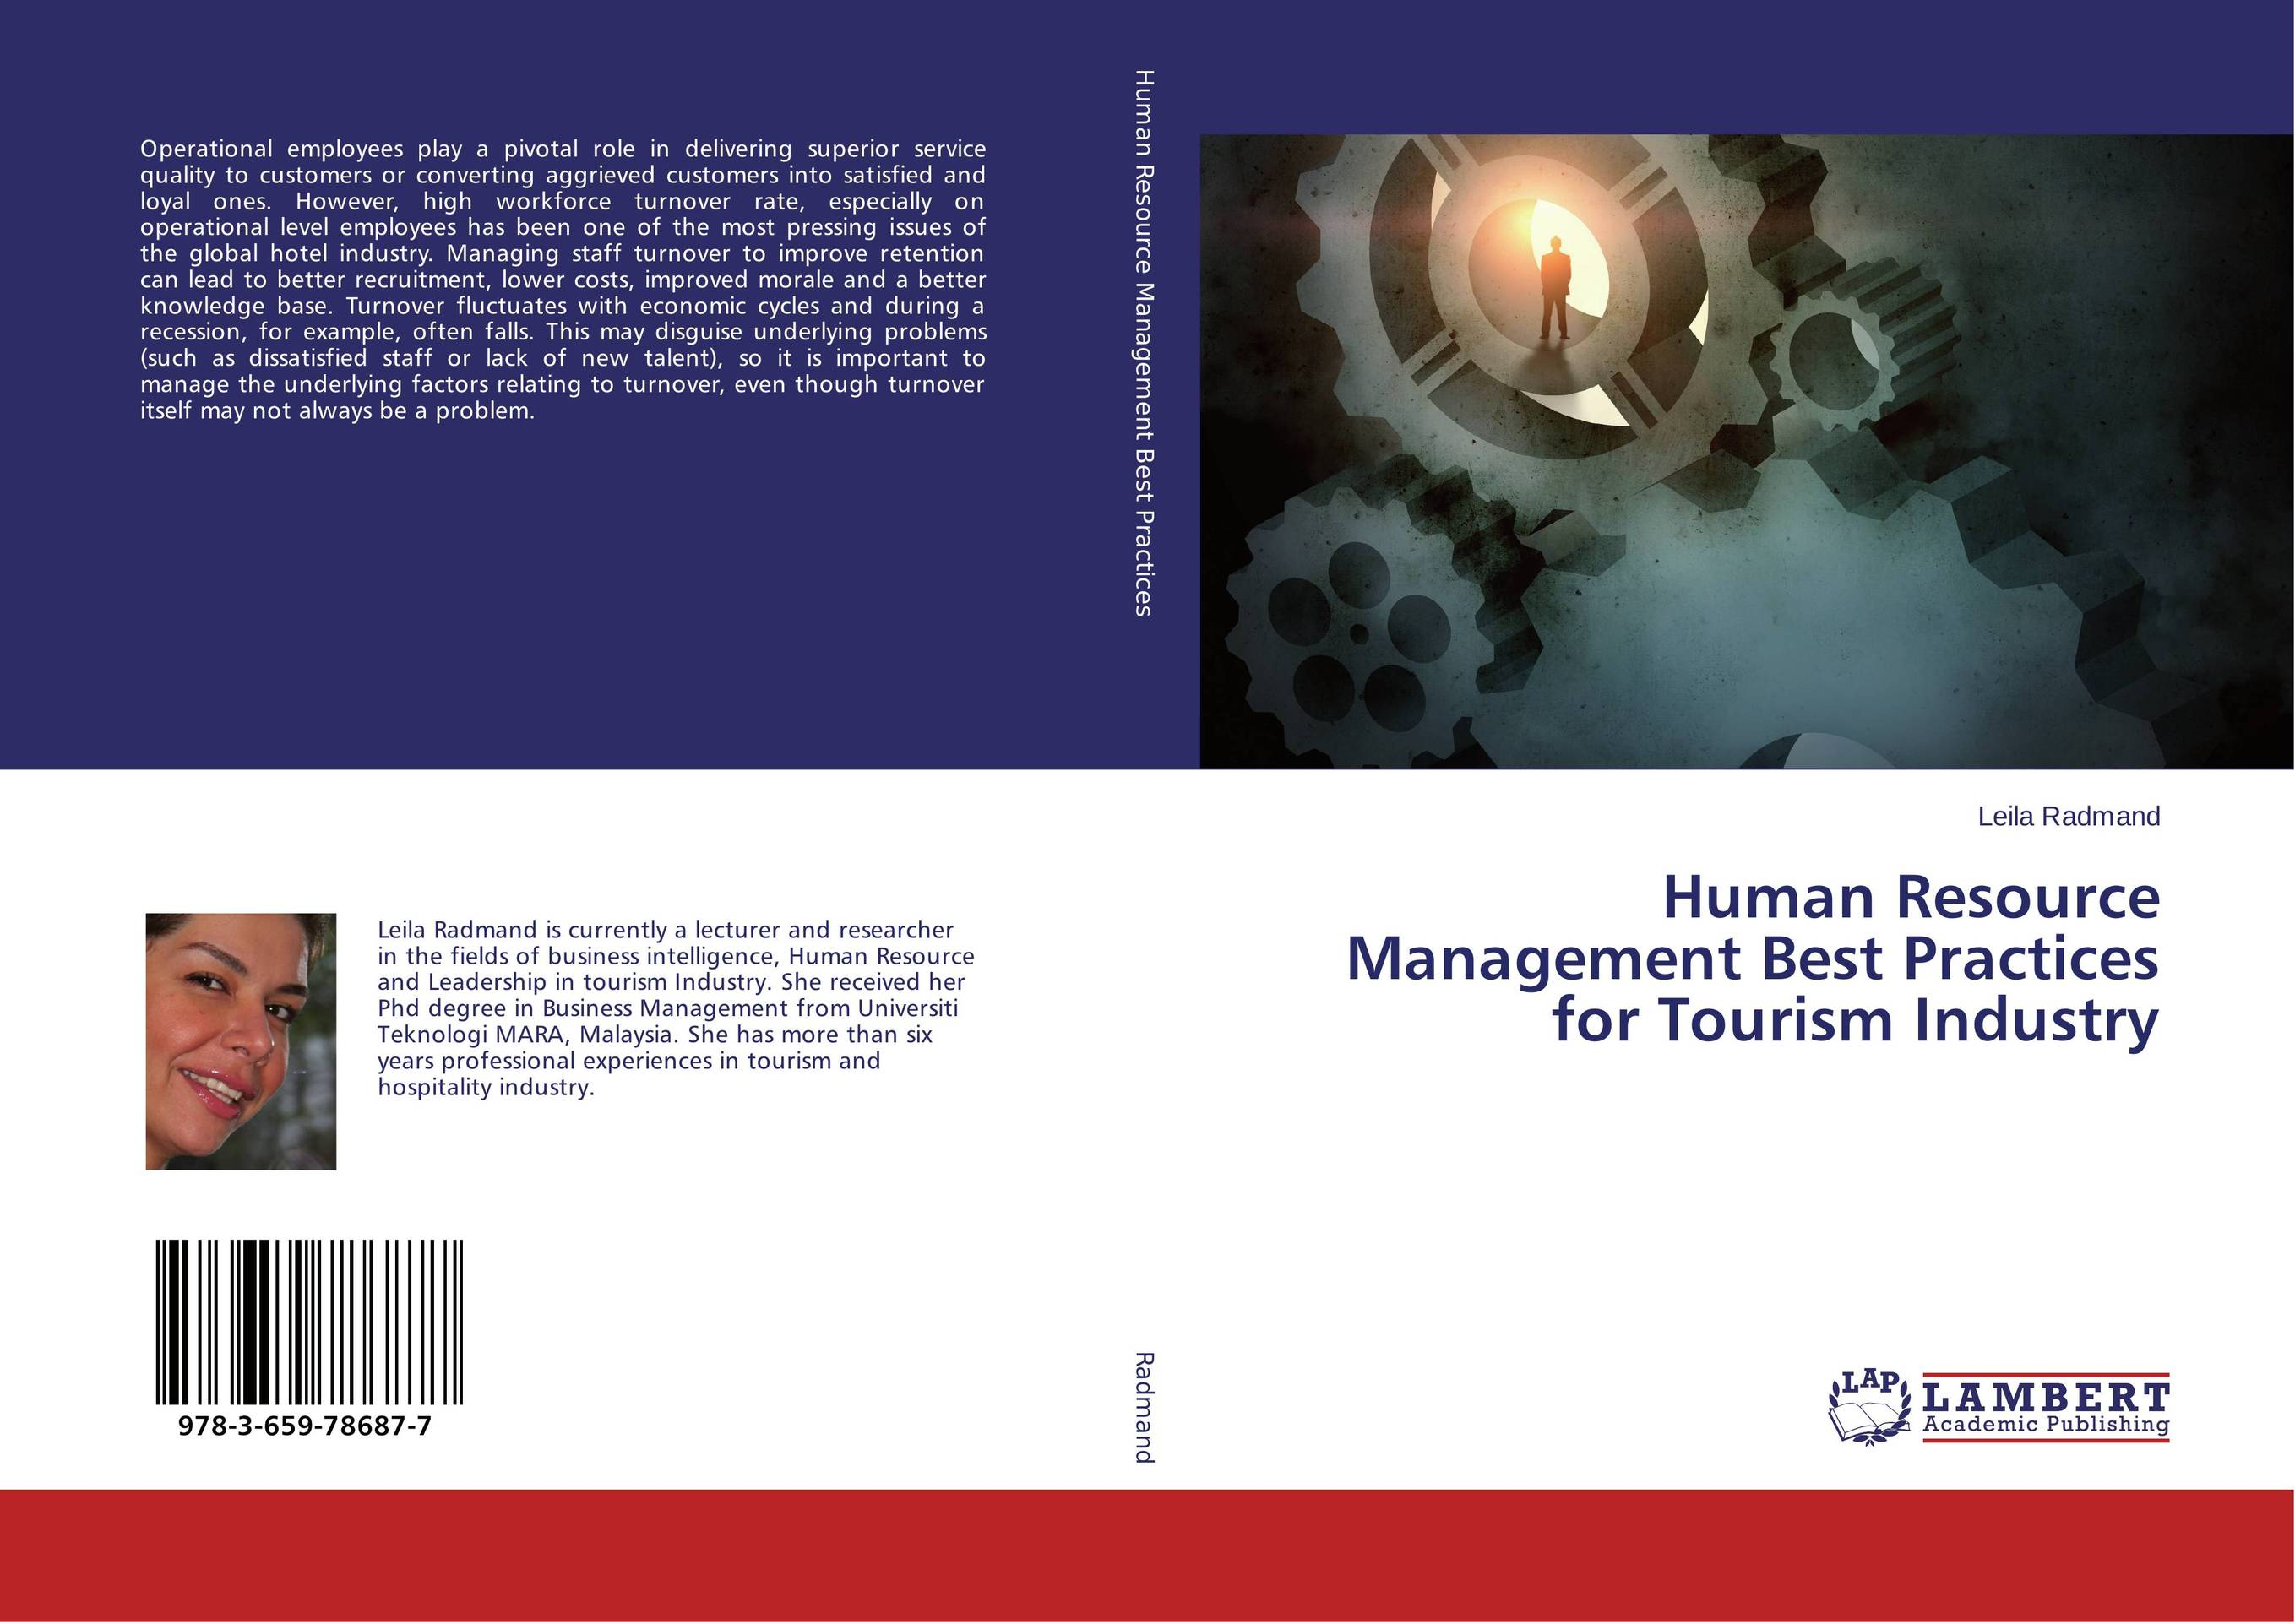 Human Resource Management Best Practices for Tourism Industry